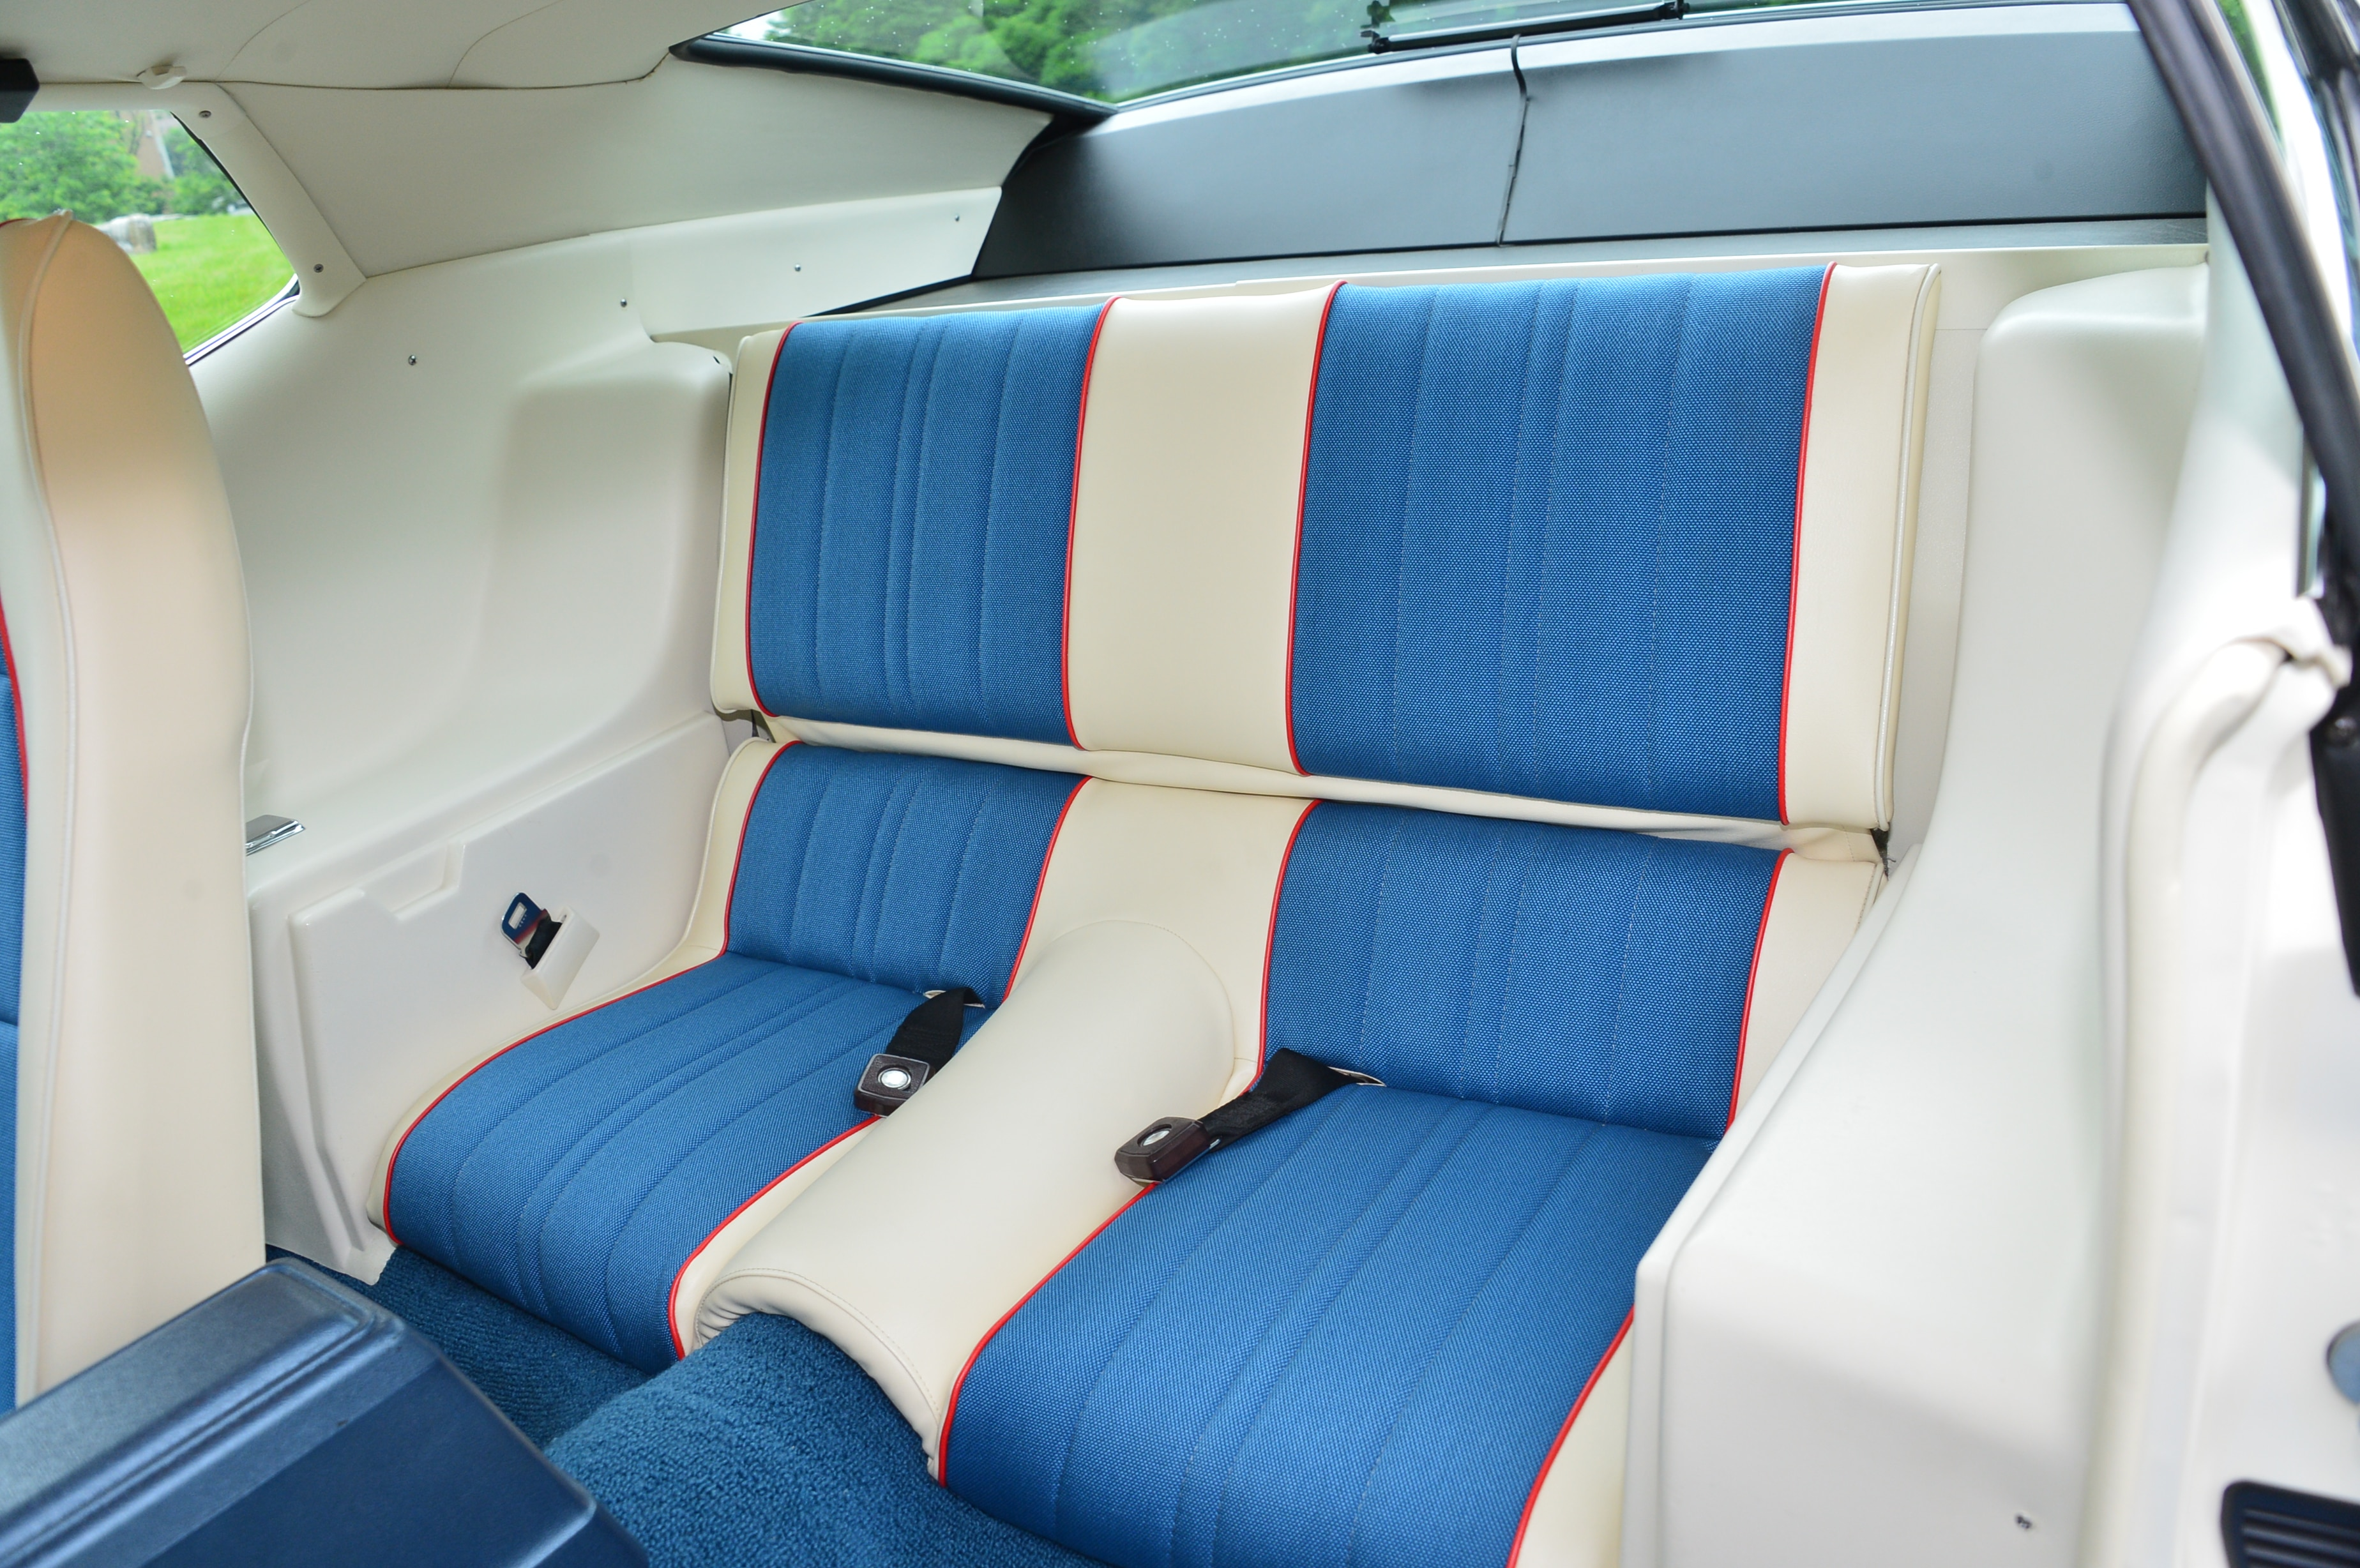 1972 Ford Mustang Seats